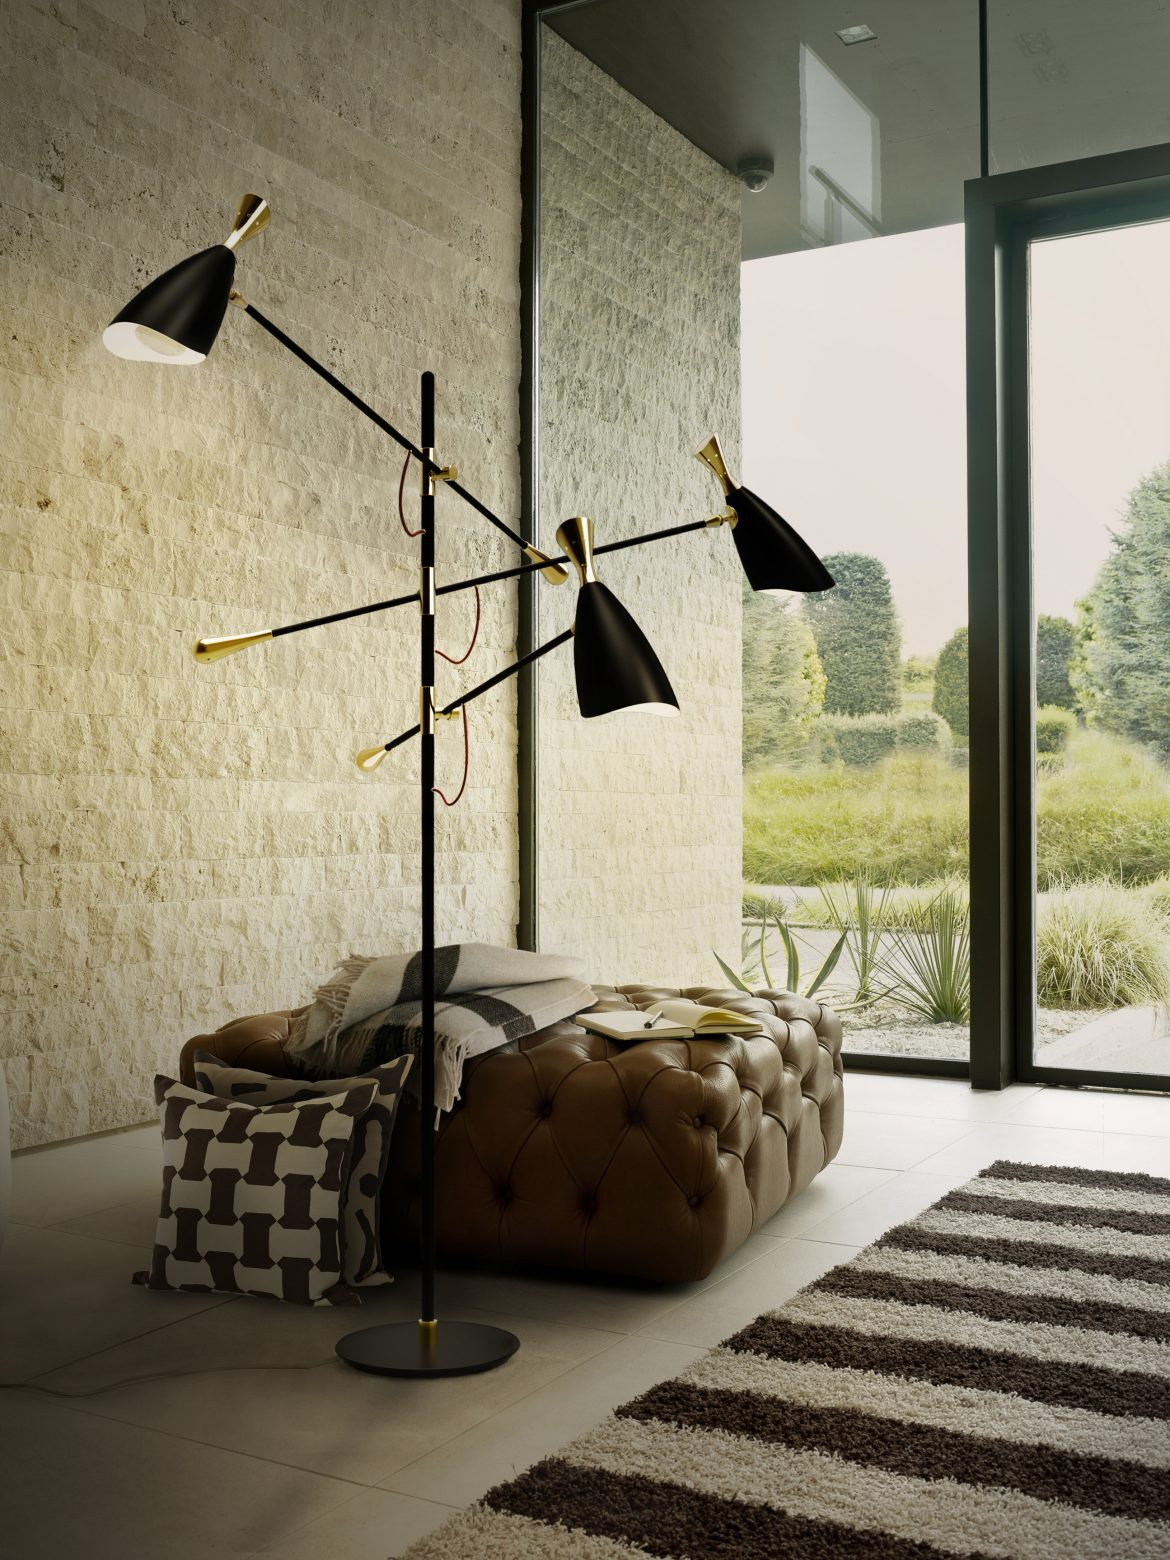 Ready To Update Your Home With These Bedroom Lighting Designs 2 Bedroom Lighting Designs Ready To Update Your Home With These Bedroom Lighting Designs? Ready To Update Your Home With These Bedroom Lighting Designs 2